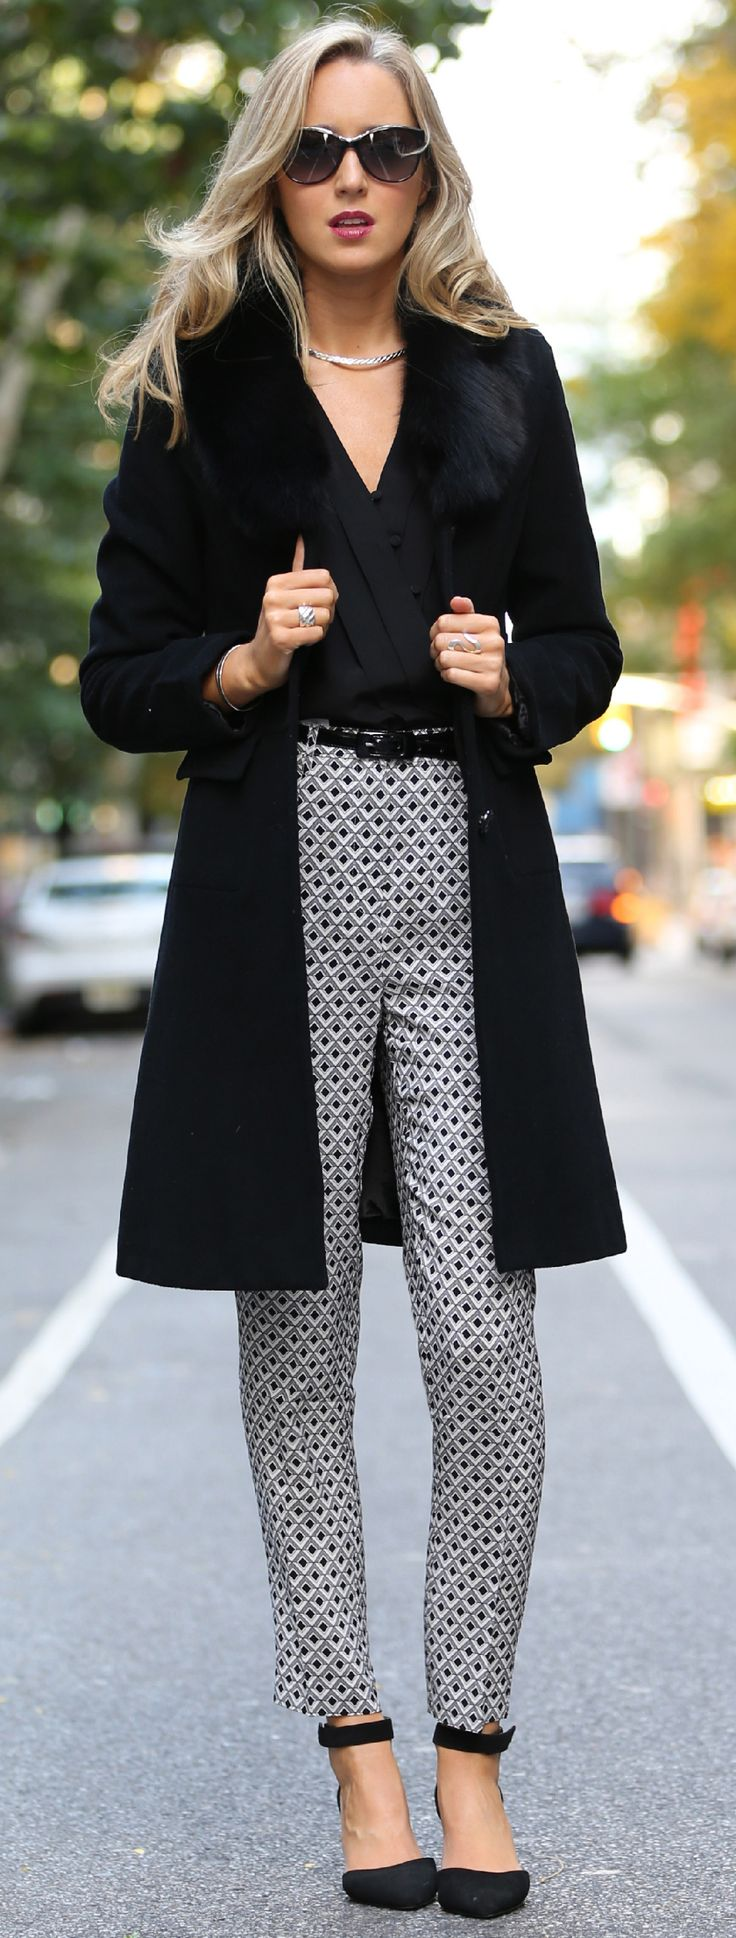 The Classy Cubicle: Coat Crush {fashion blog, young professional women, office style inspiration, corporate work wear, fall fashion trends, reiss, geometric print, silk pants, heirloom, silk button v-neck top, sheer sleeves, ralph lauren, prada, asos, ankle strap heels, silver choker}